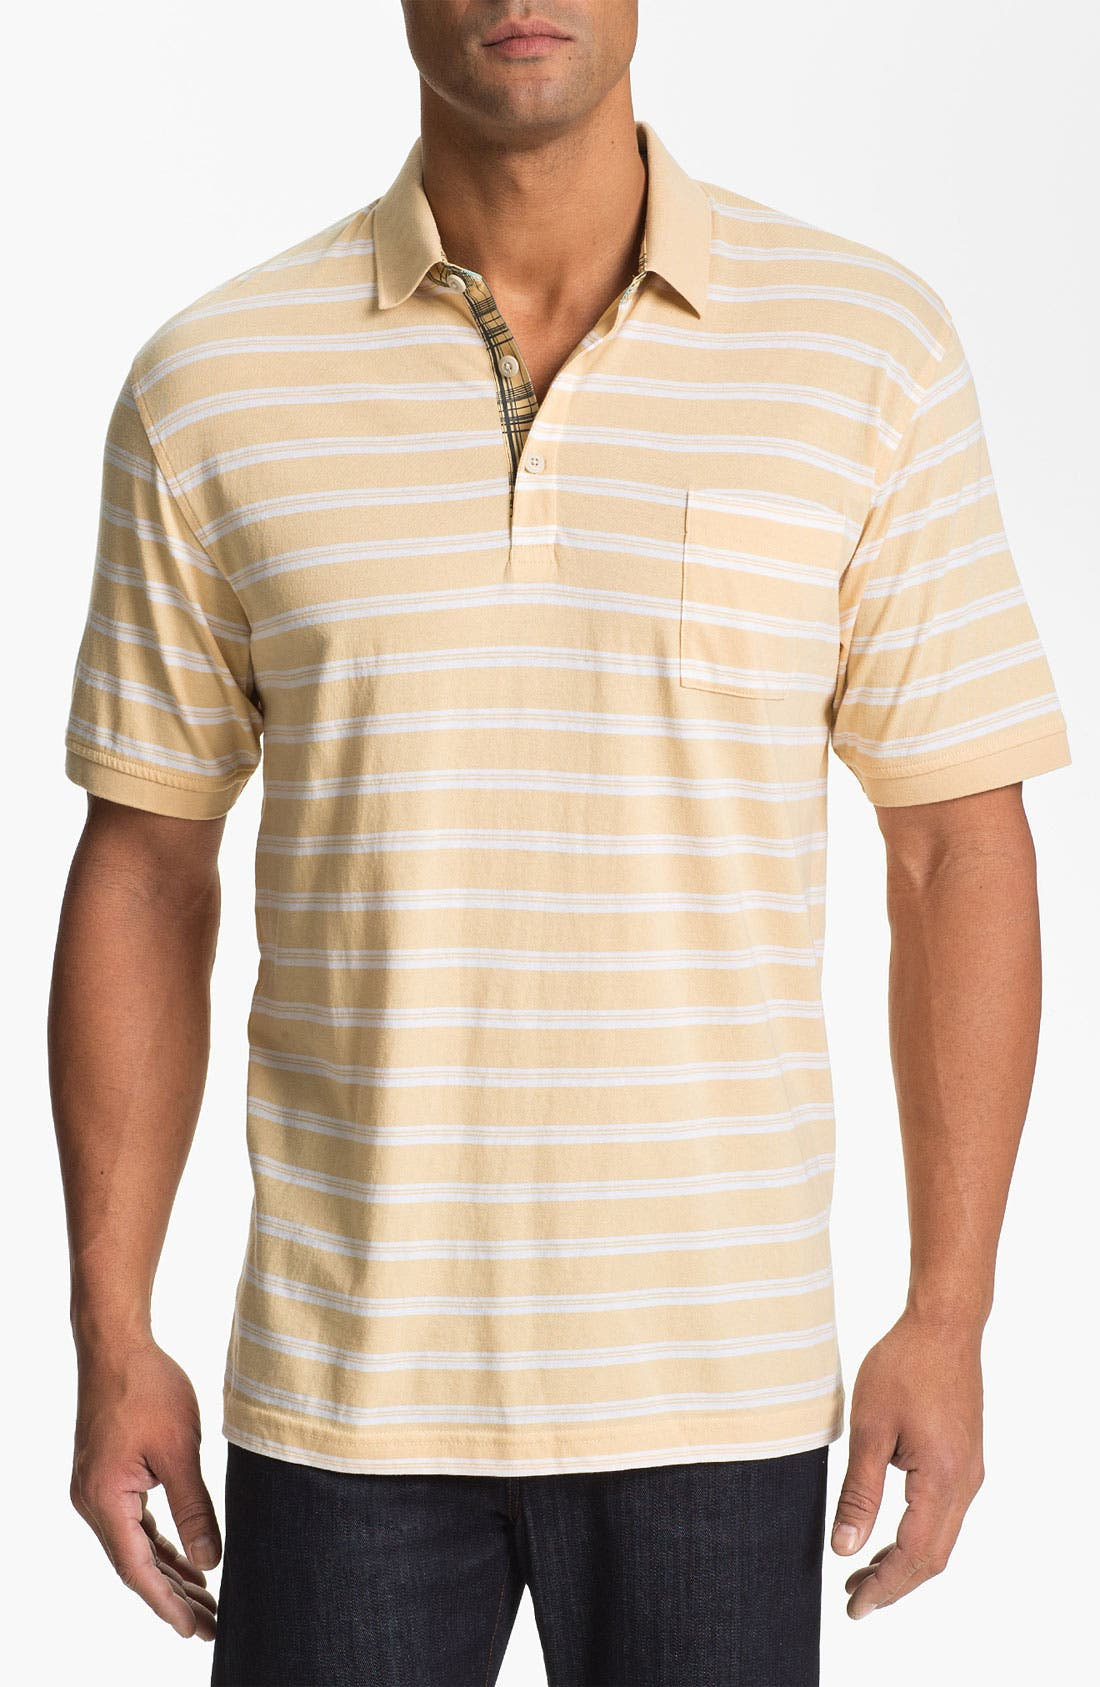 Alternate Image 1 Selected - Cutter & Buck 'Woodlawn Stripe' Polo (Big & Tall)